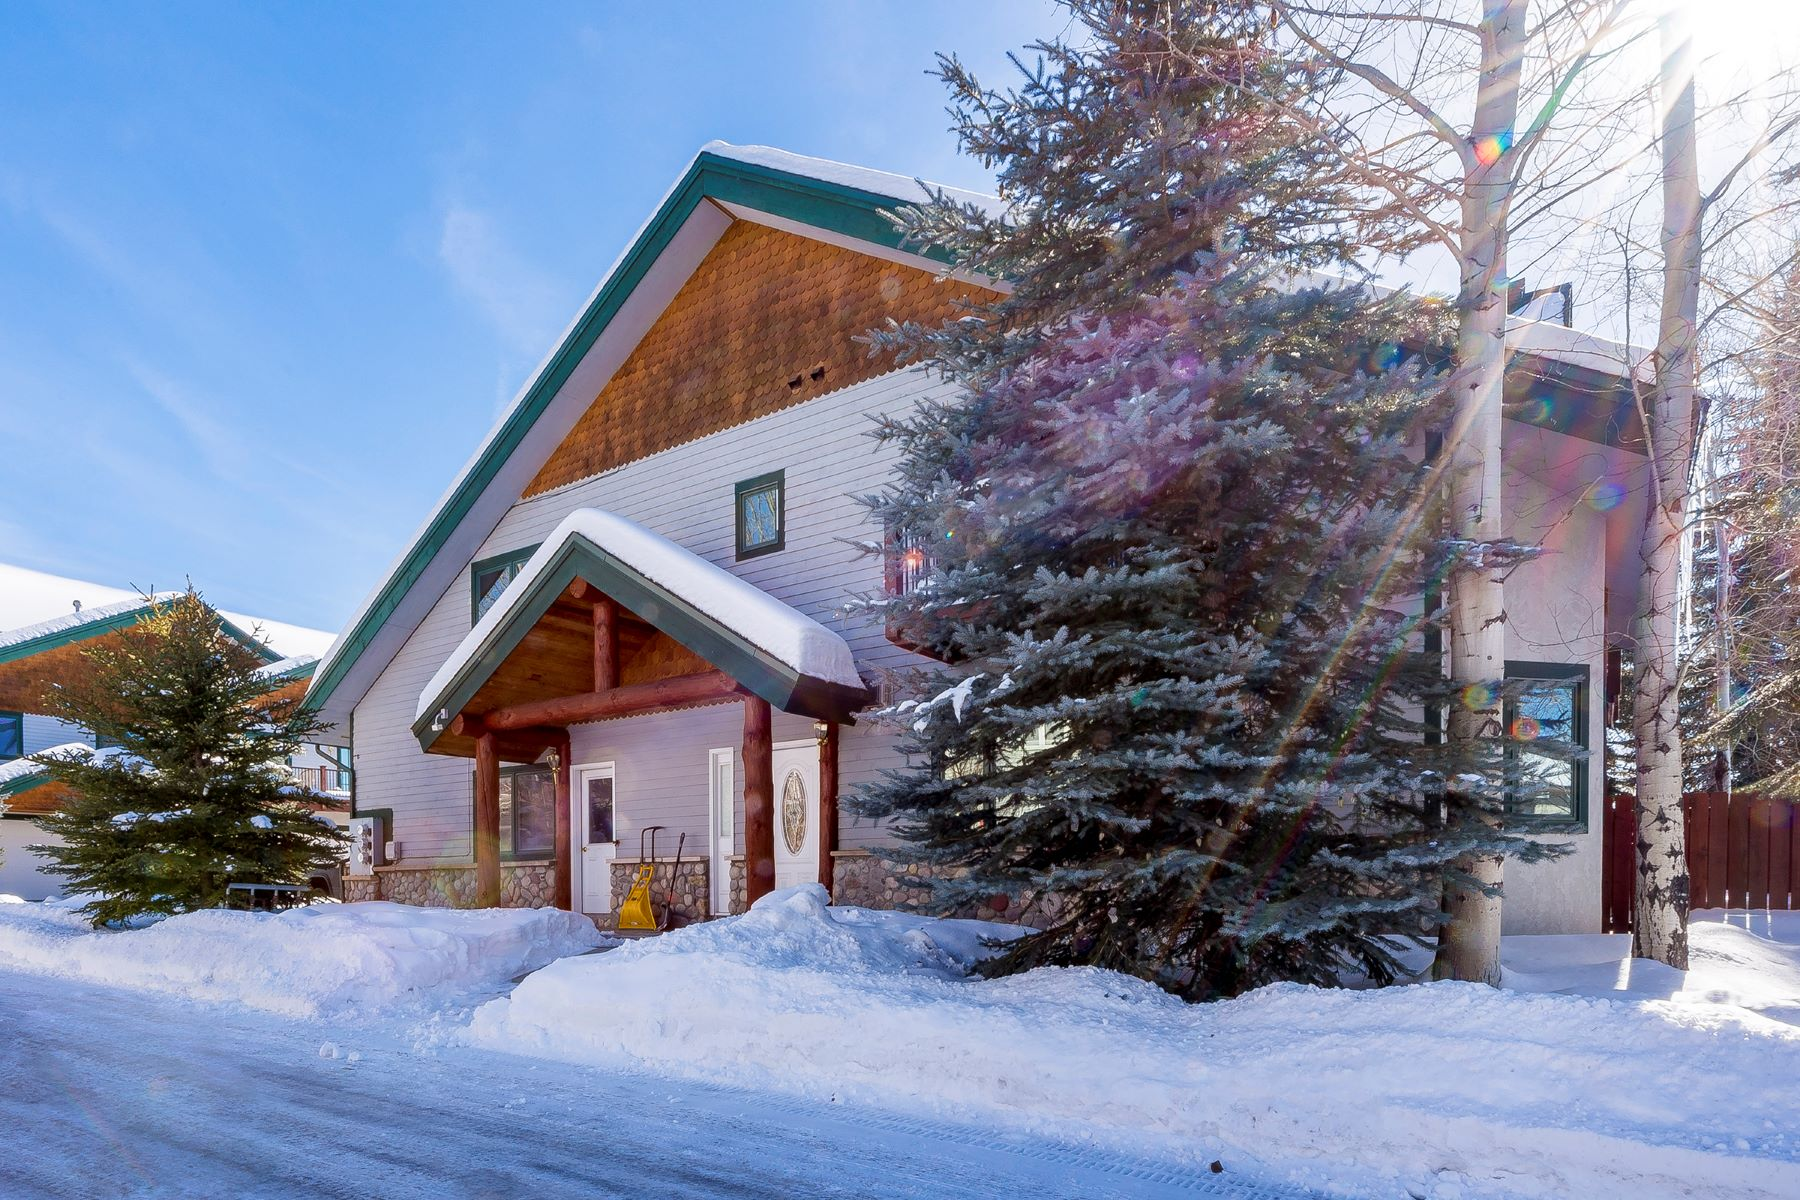 Single Family Home for Sale at Remarkable Fox Willow Remodel 1551 Thistlebrook, Steamboat Springs, Colorado, 80487 United States